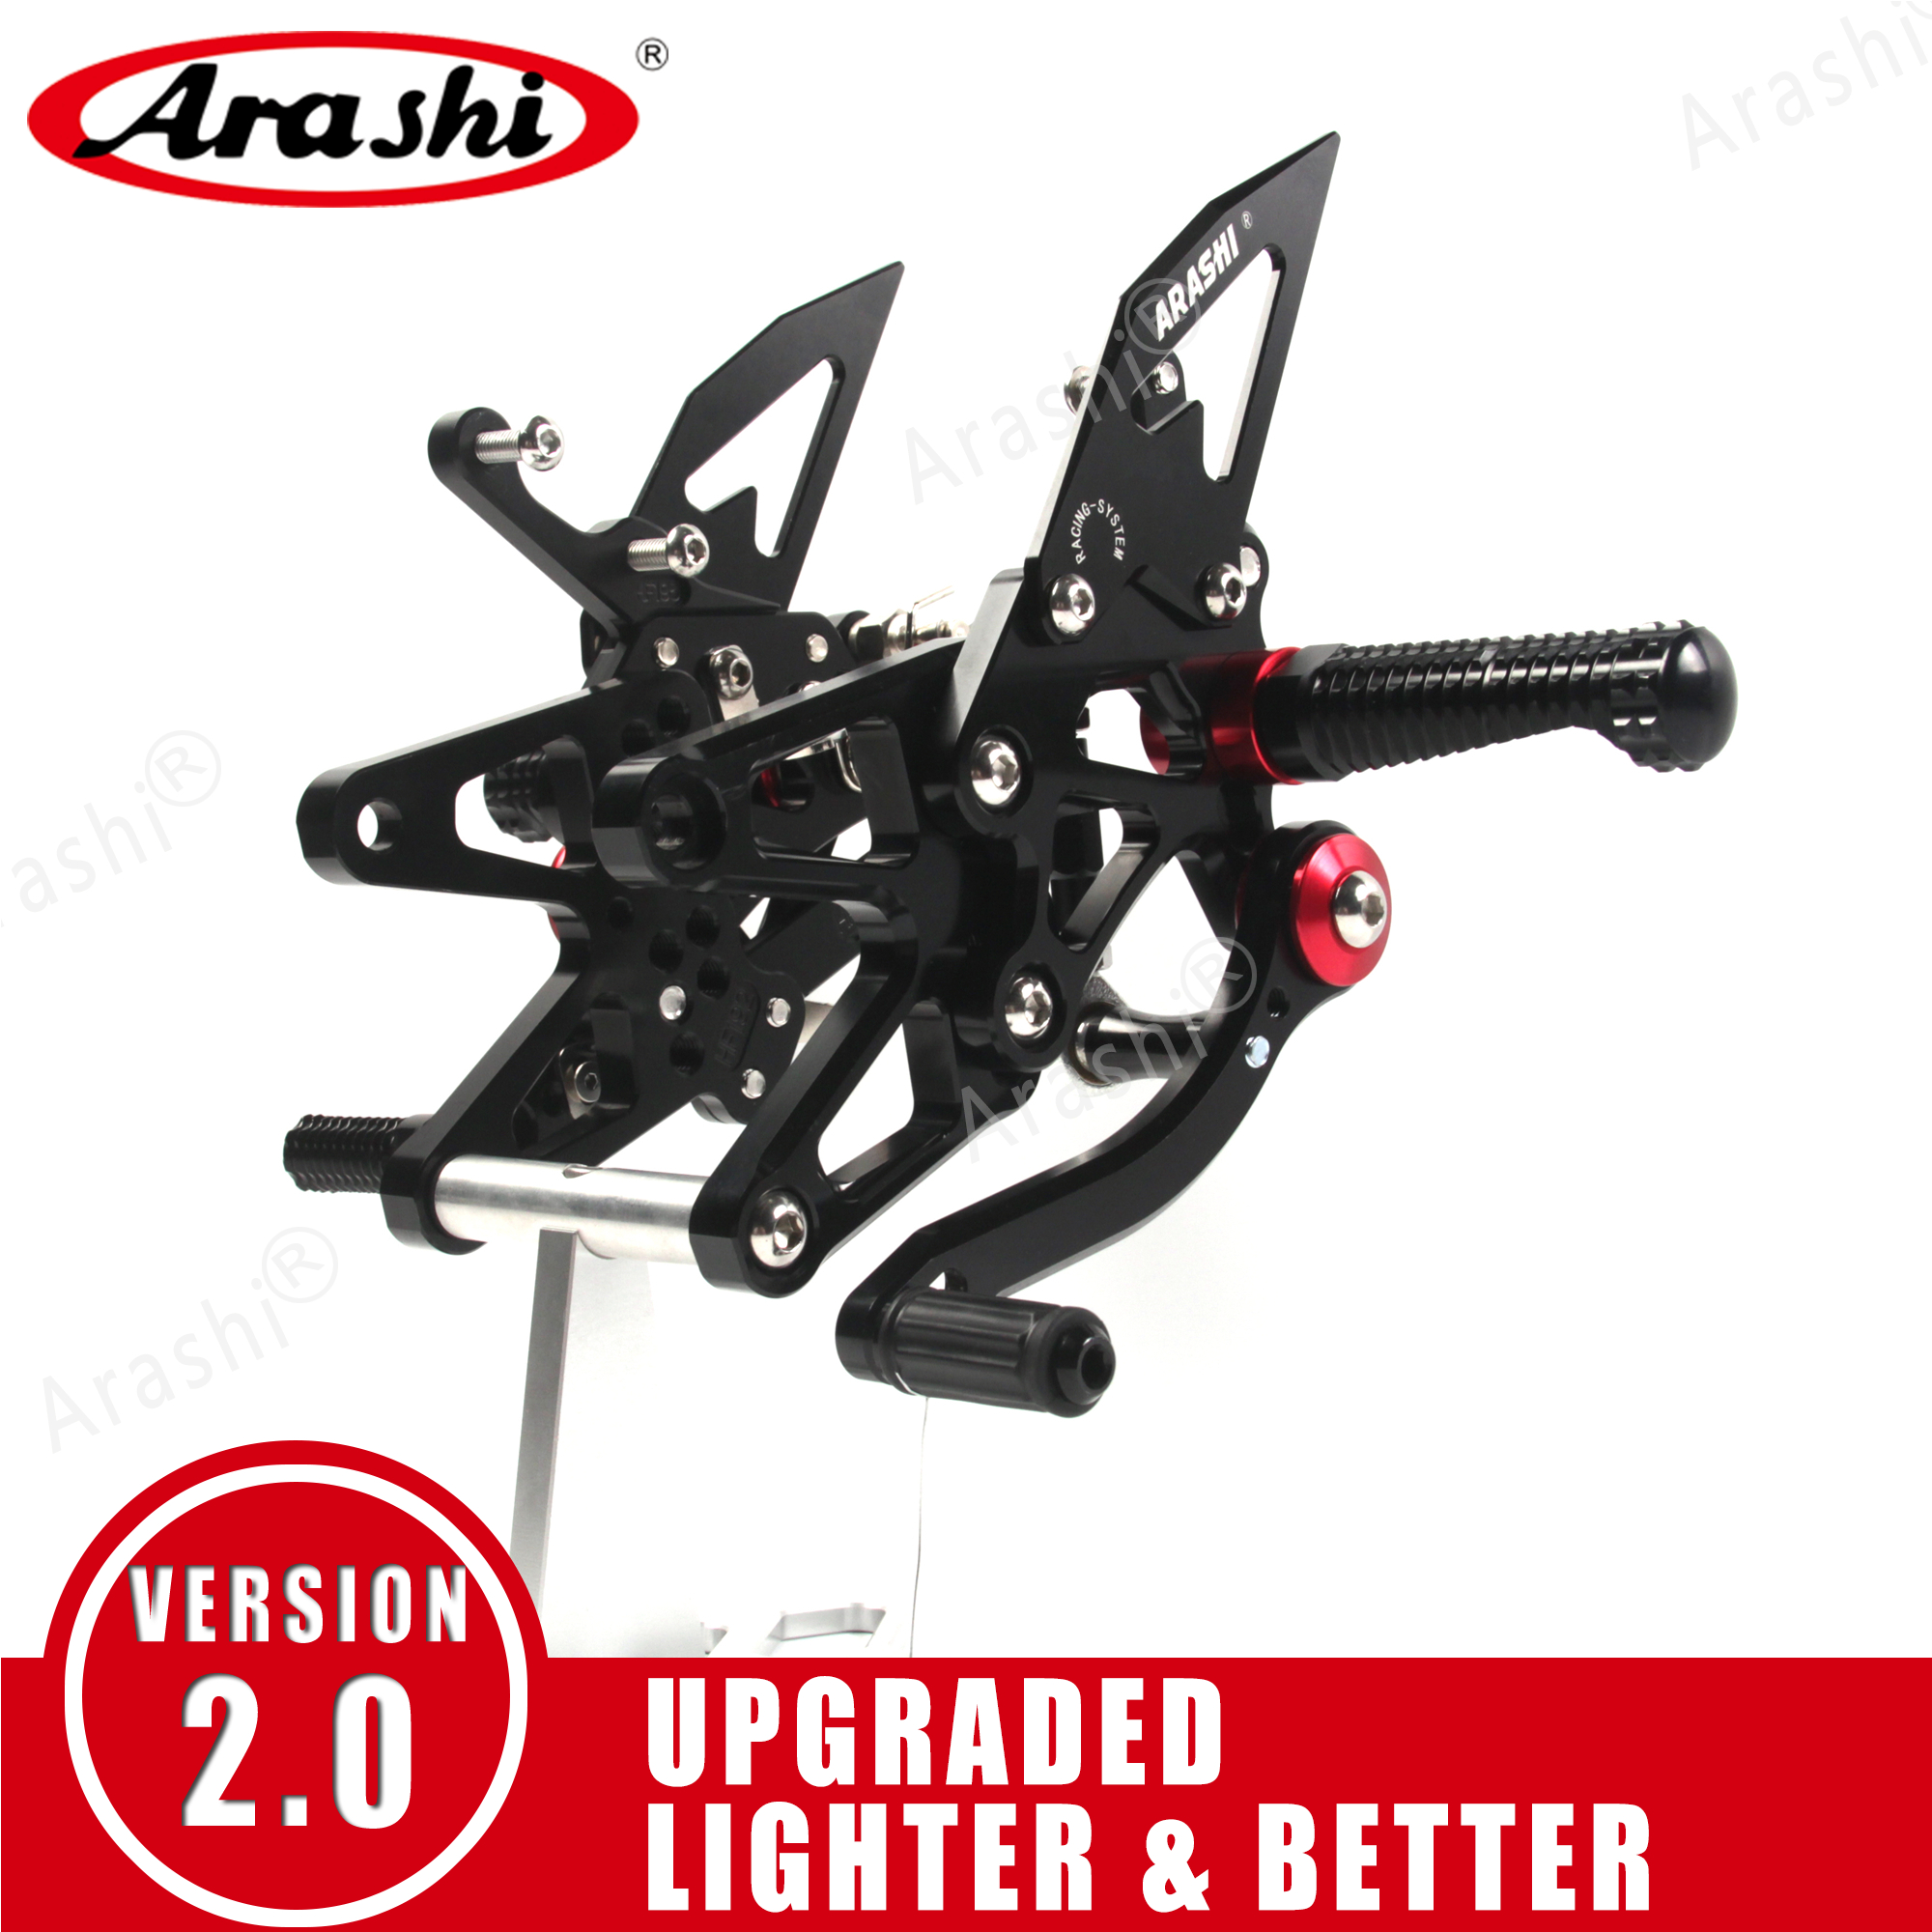 Arashi 1 Set For BMW S1000RR 2009 -2018 CNC Adjustable Footrests Motorcycle Rider Foot Pegs Rearset S1000 RR Accessories 2017